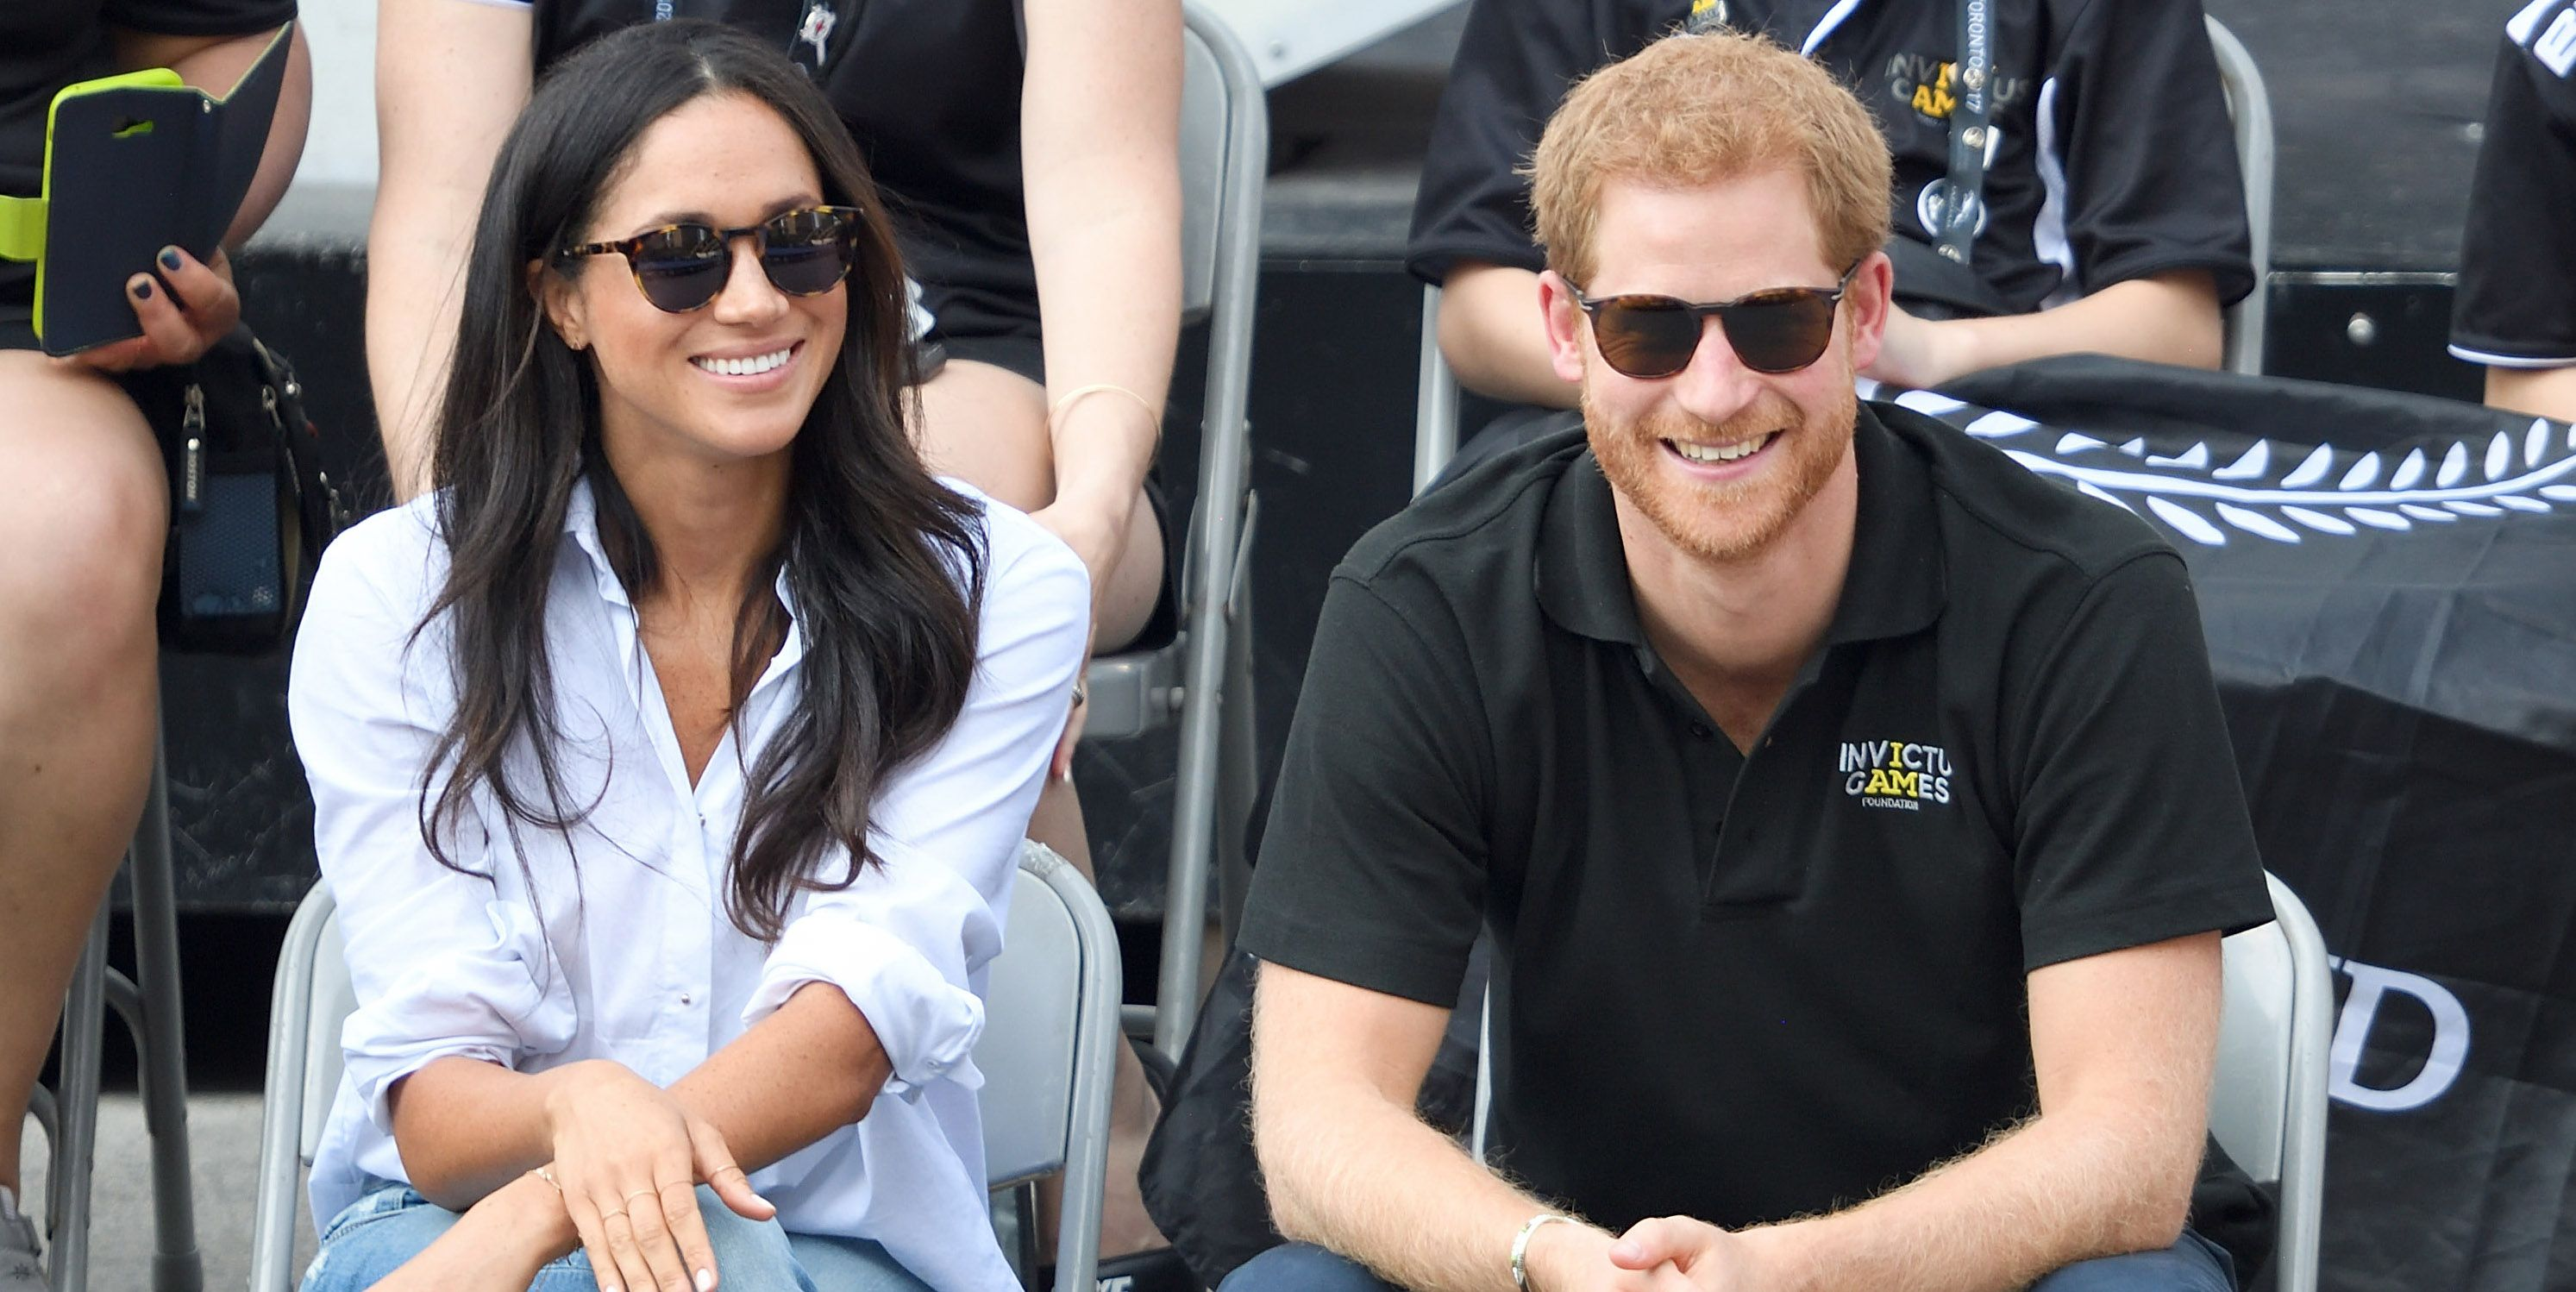 Meghan Markle Prince Harry Invictus games 2017 white shirt